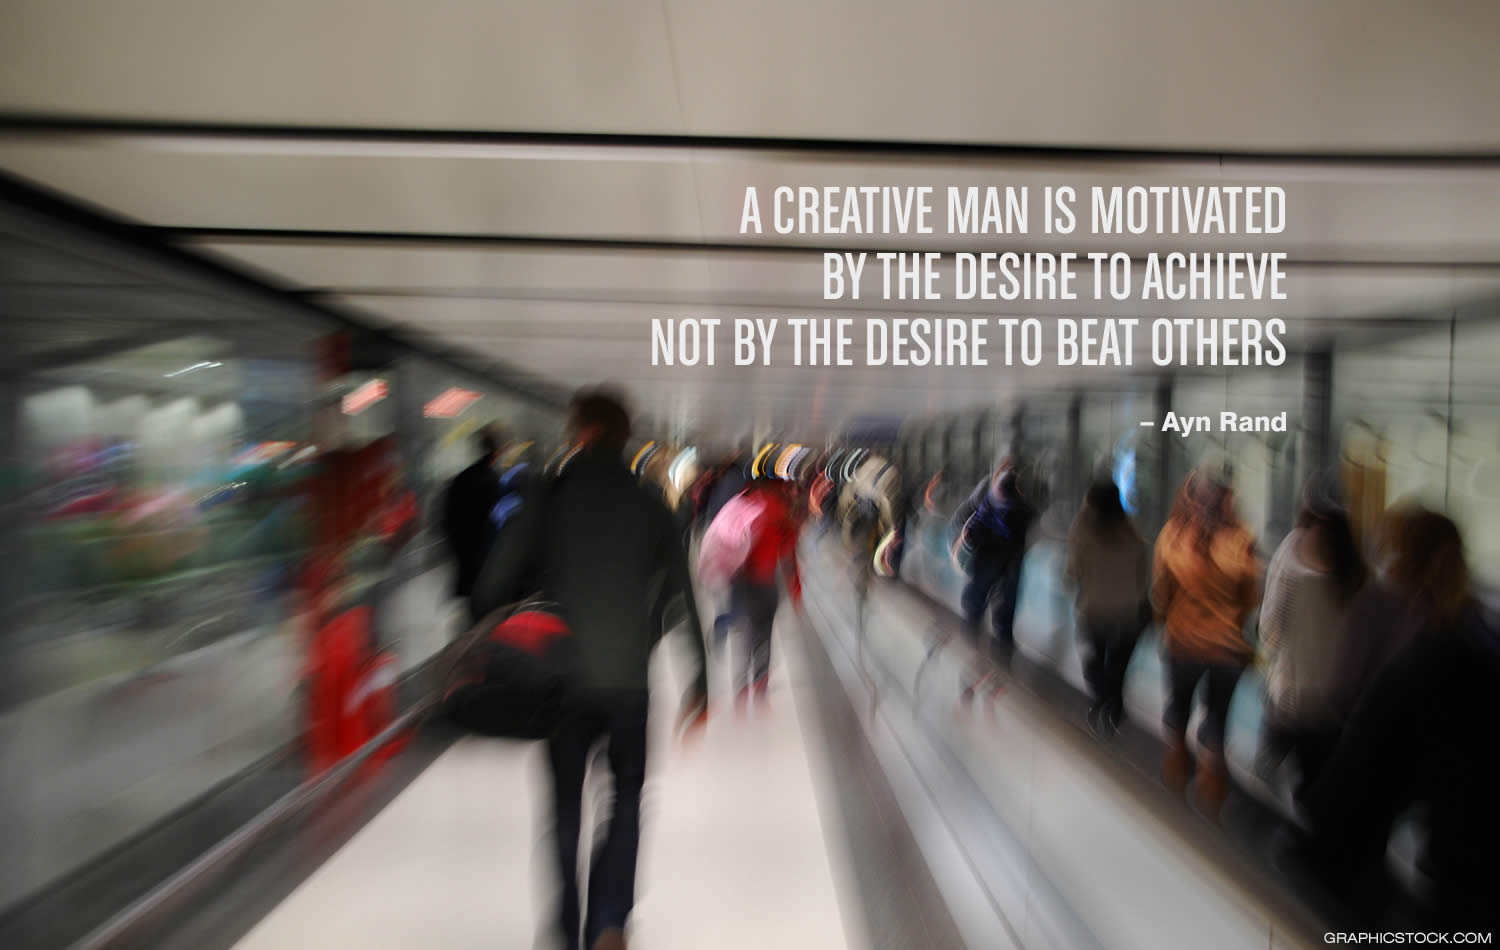 """A creative man is motivated by the desire to achieve, not by the desire to beat others."" –Ayn Rand"